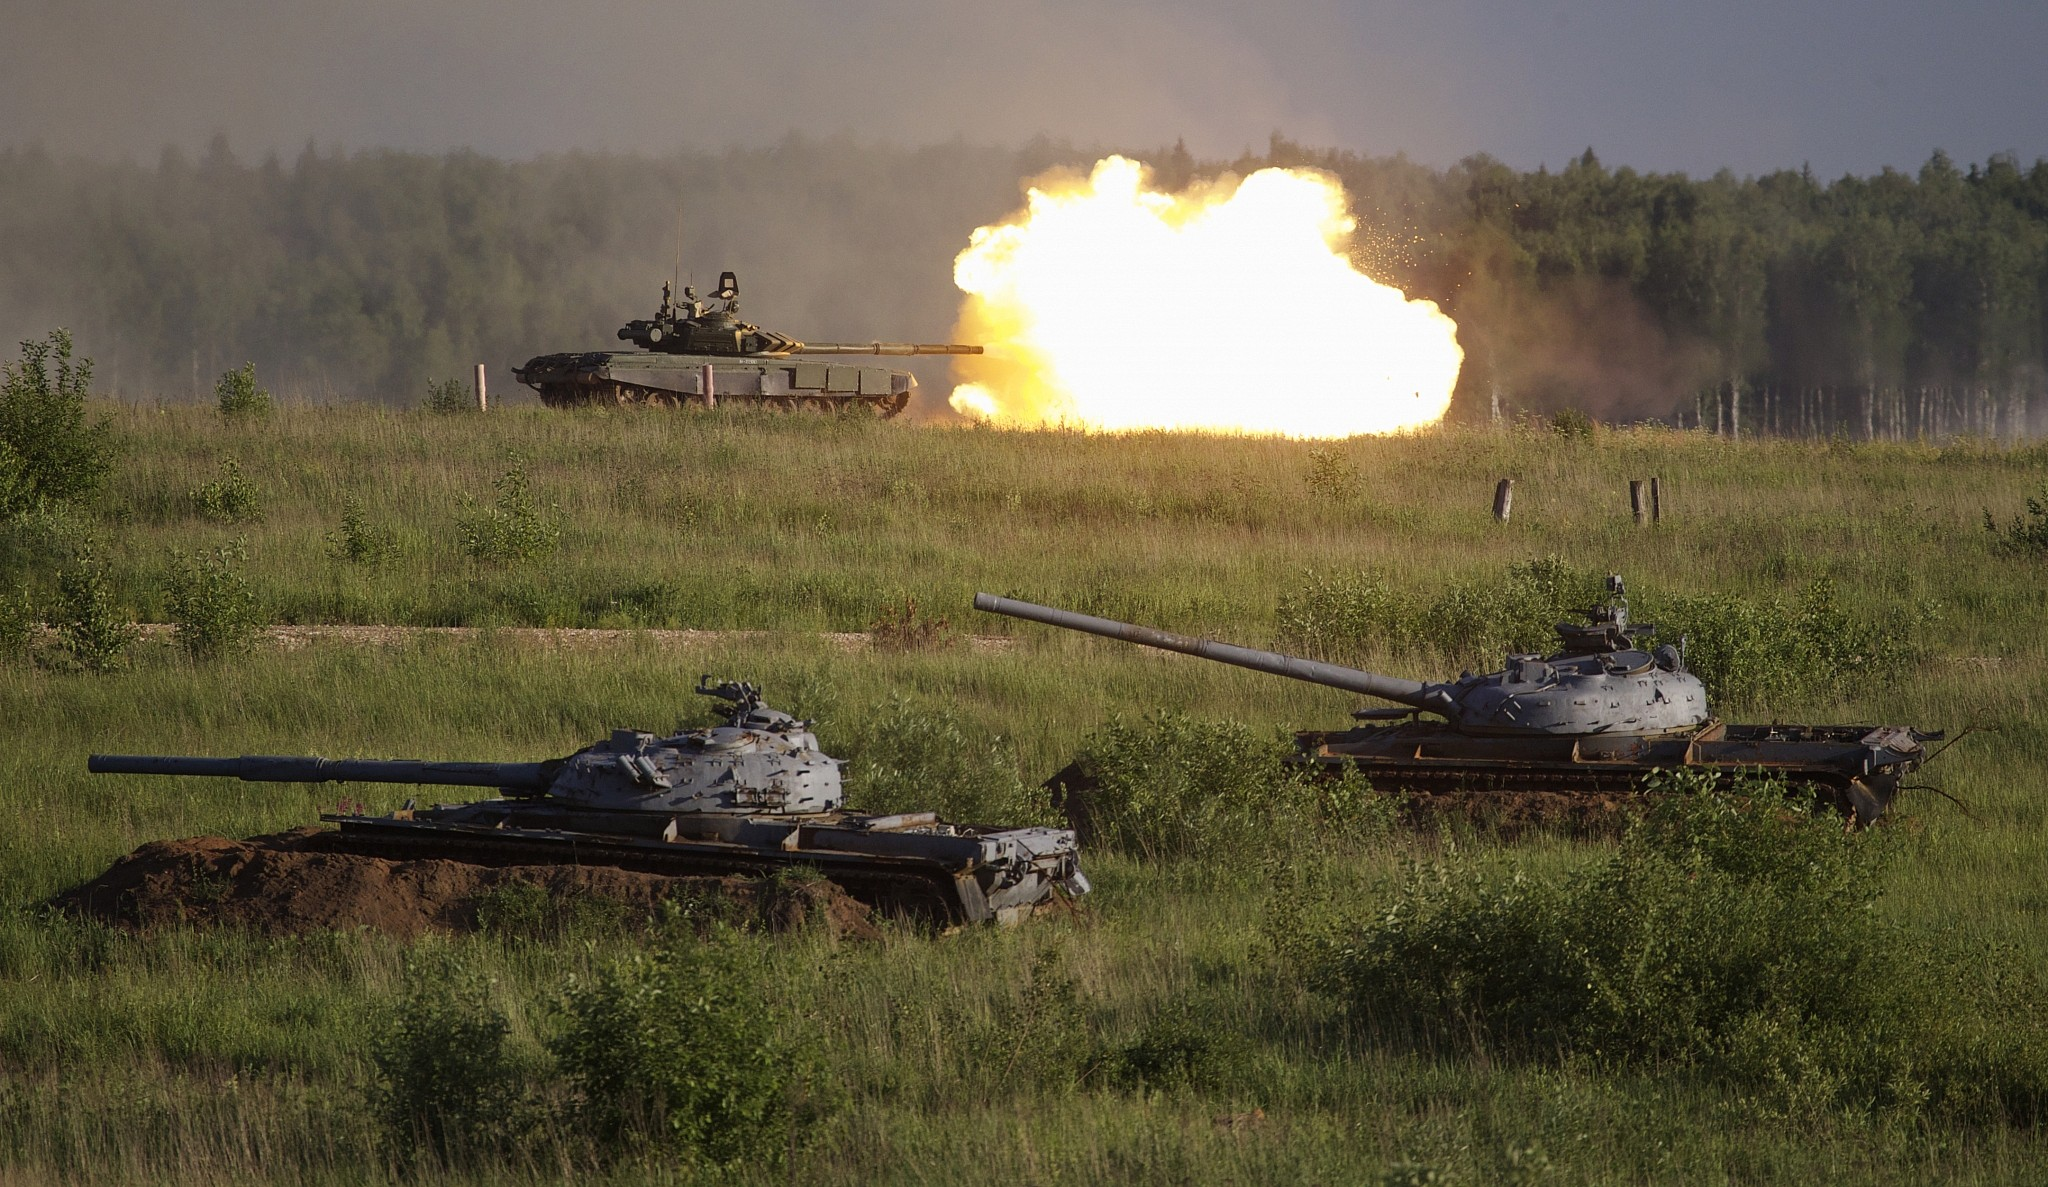 Russian T-80 main battle tank fires during a show at a shooting range in Alabino outside of Moscow Russia